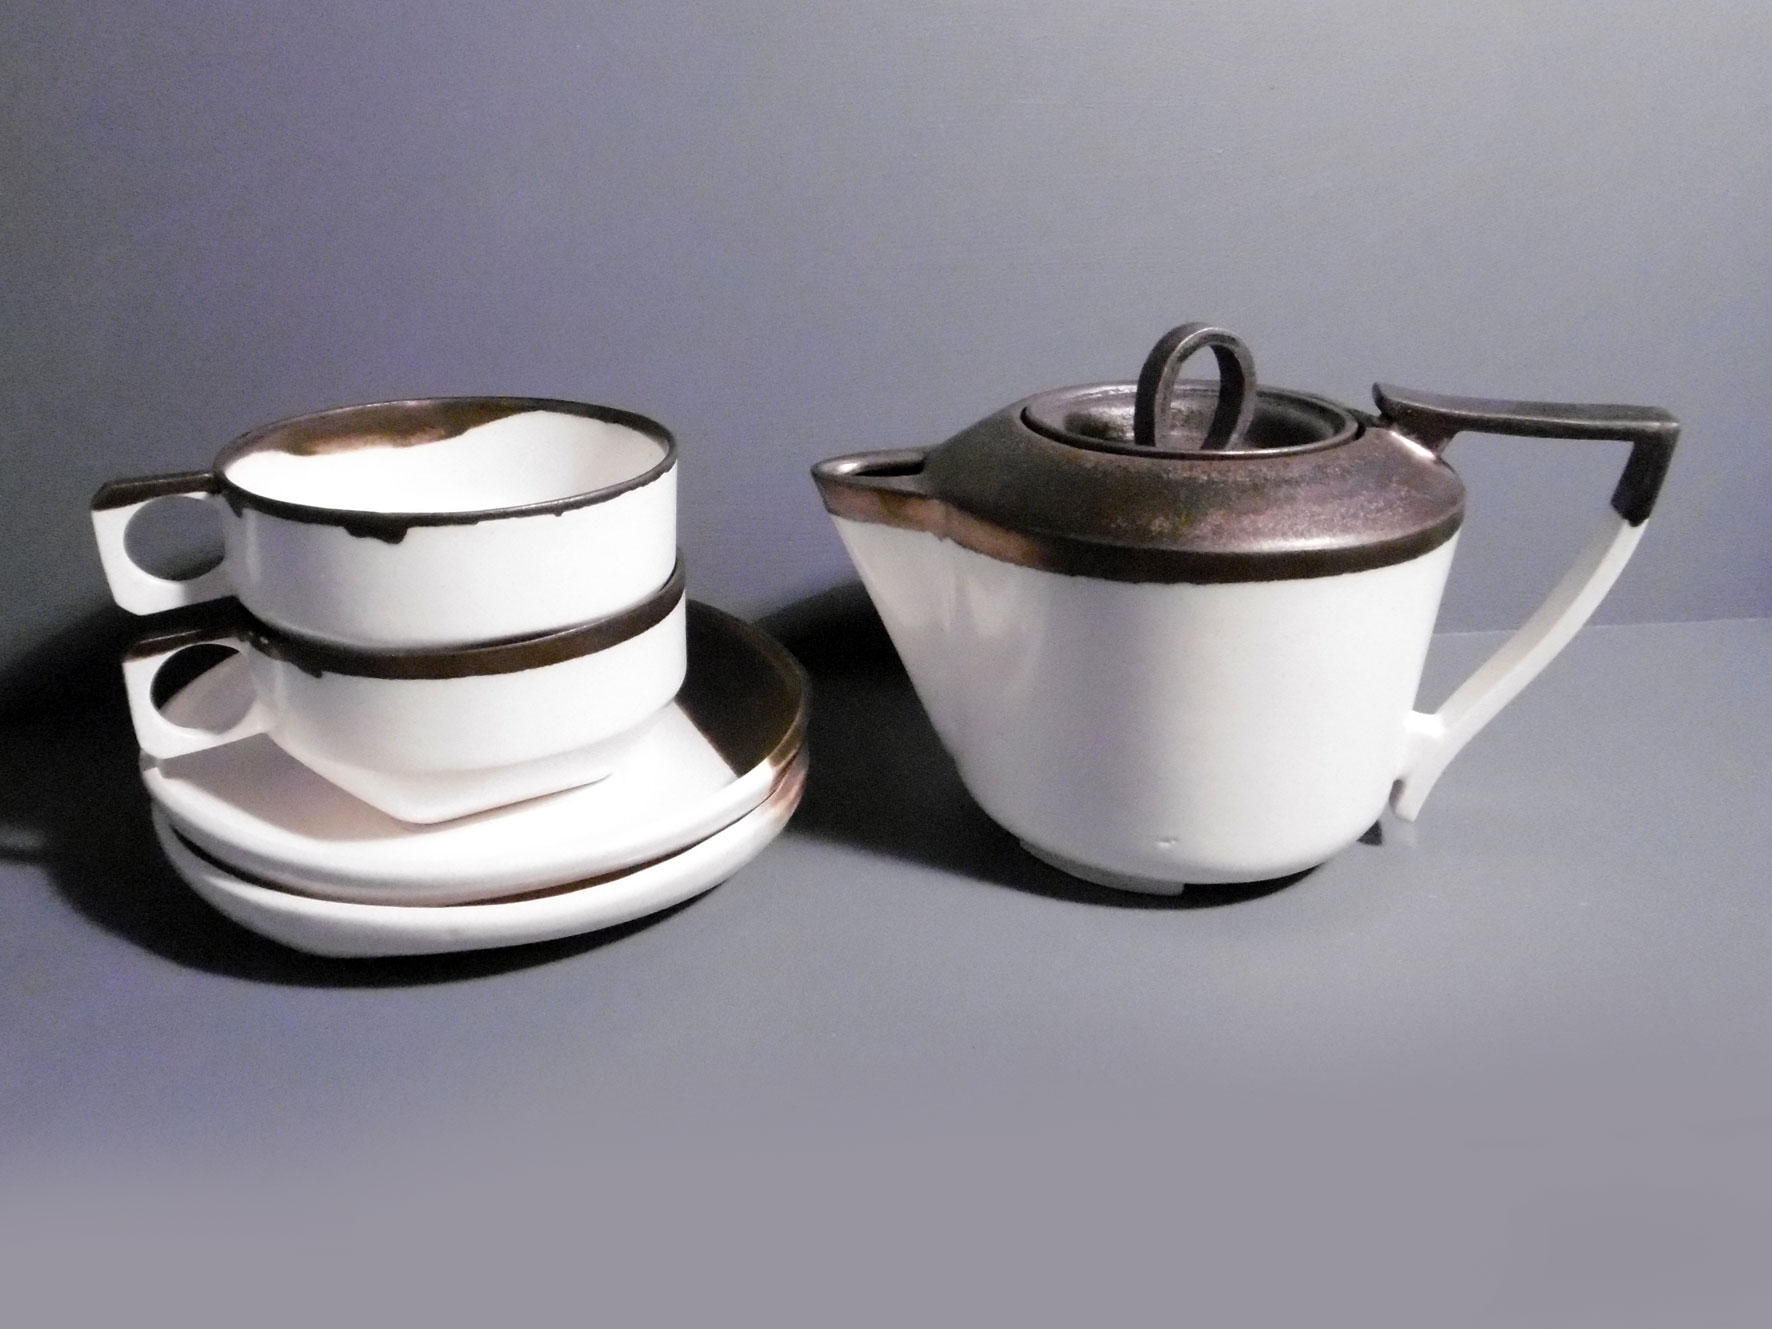 Teapot-and-2-cups-and-saucers-in-bronze-rim-a